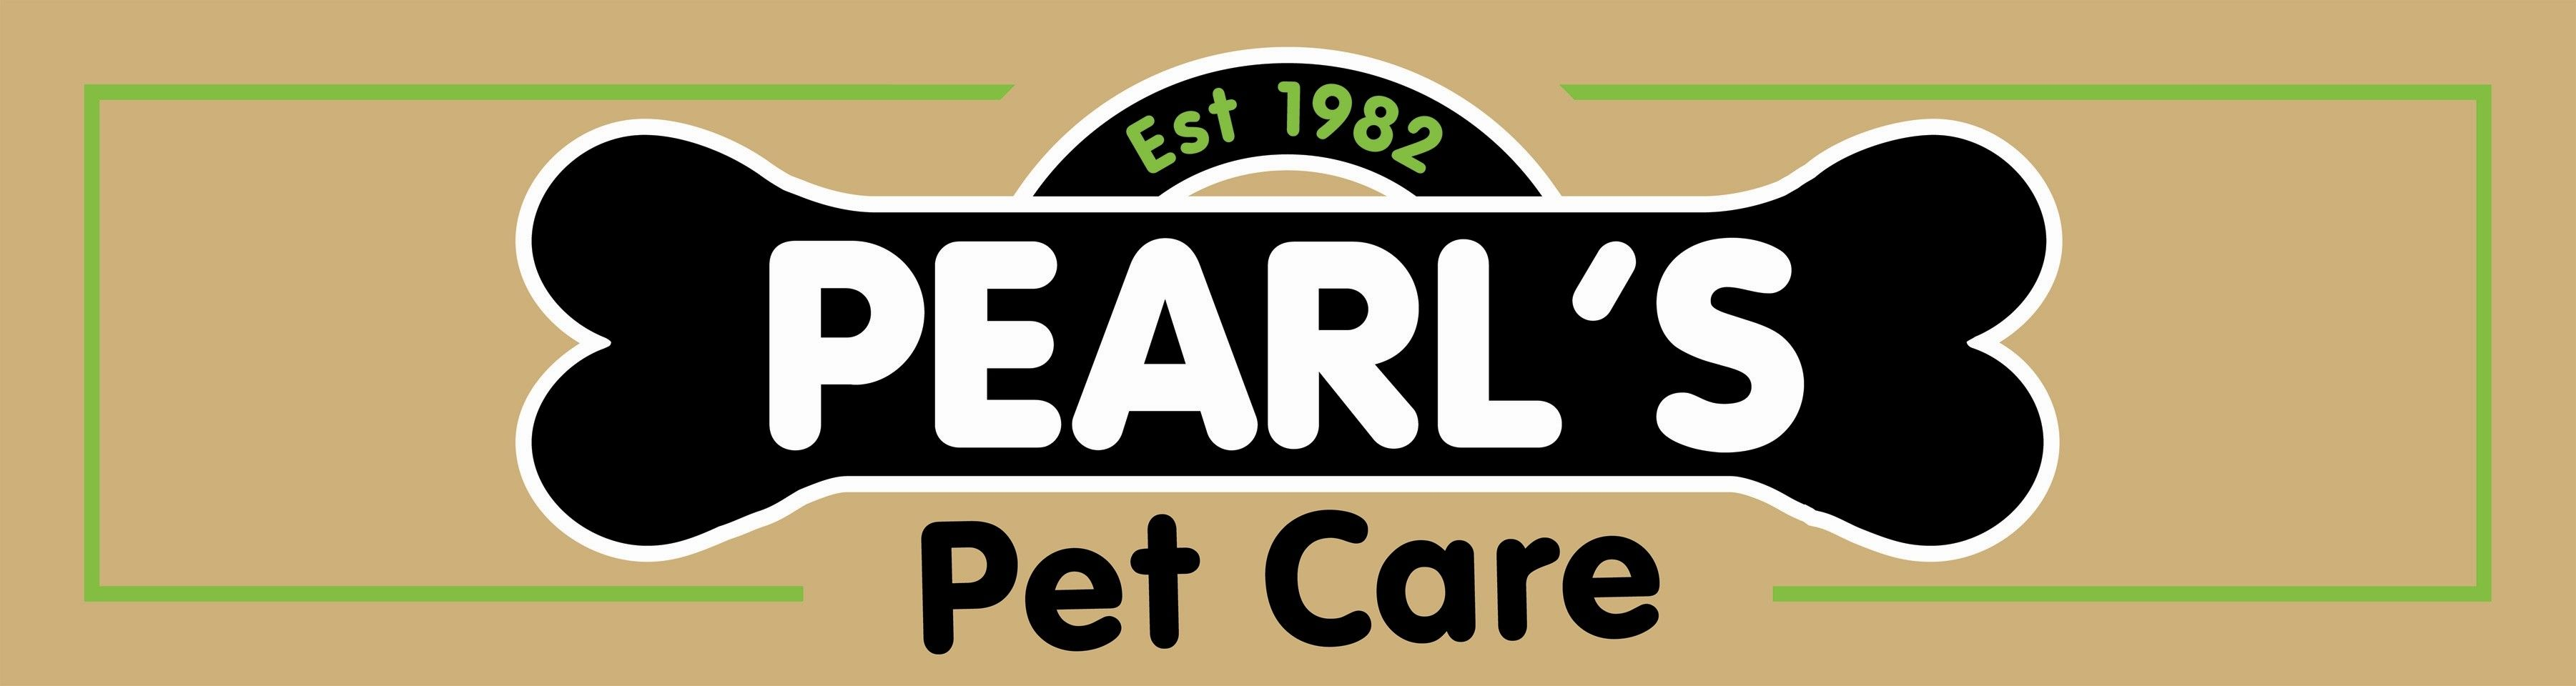 PEARL'S (Pet Care)